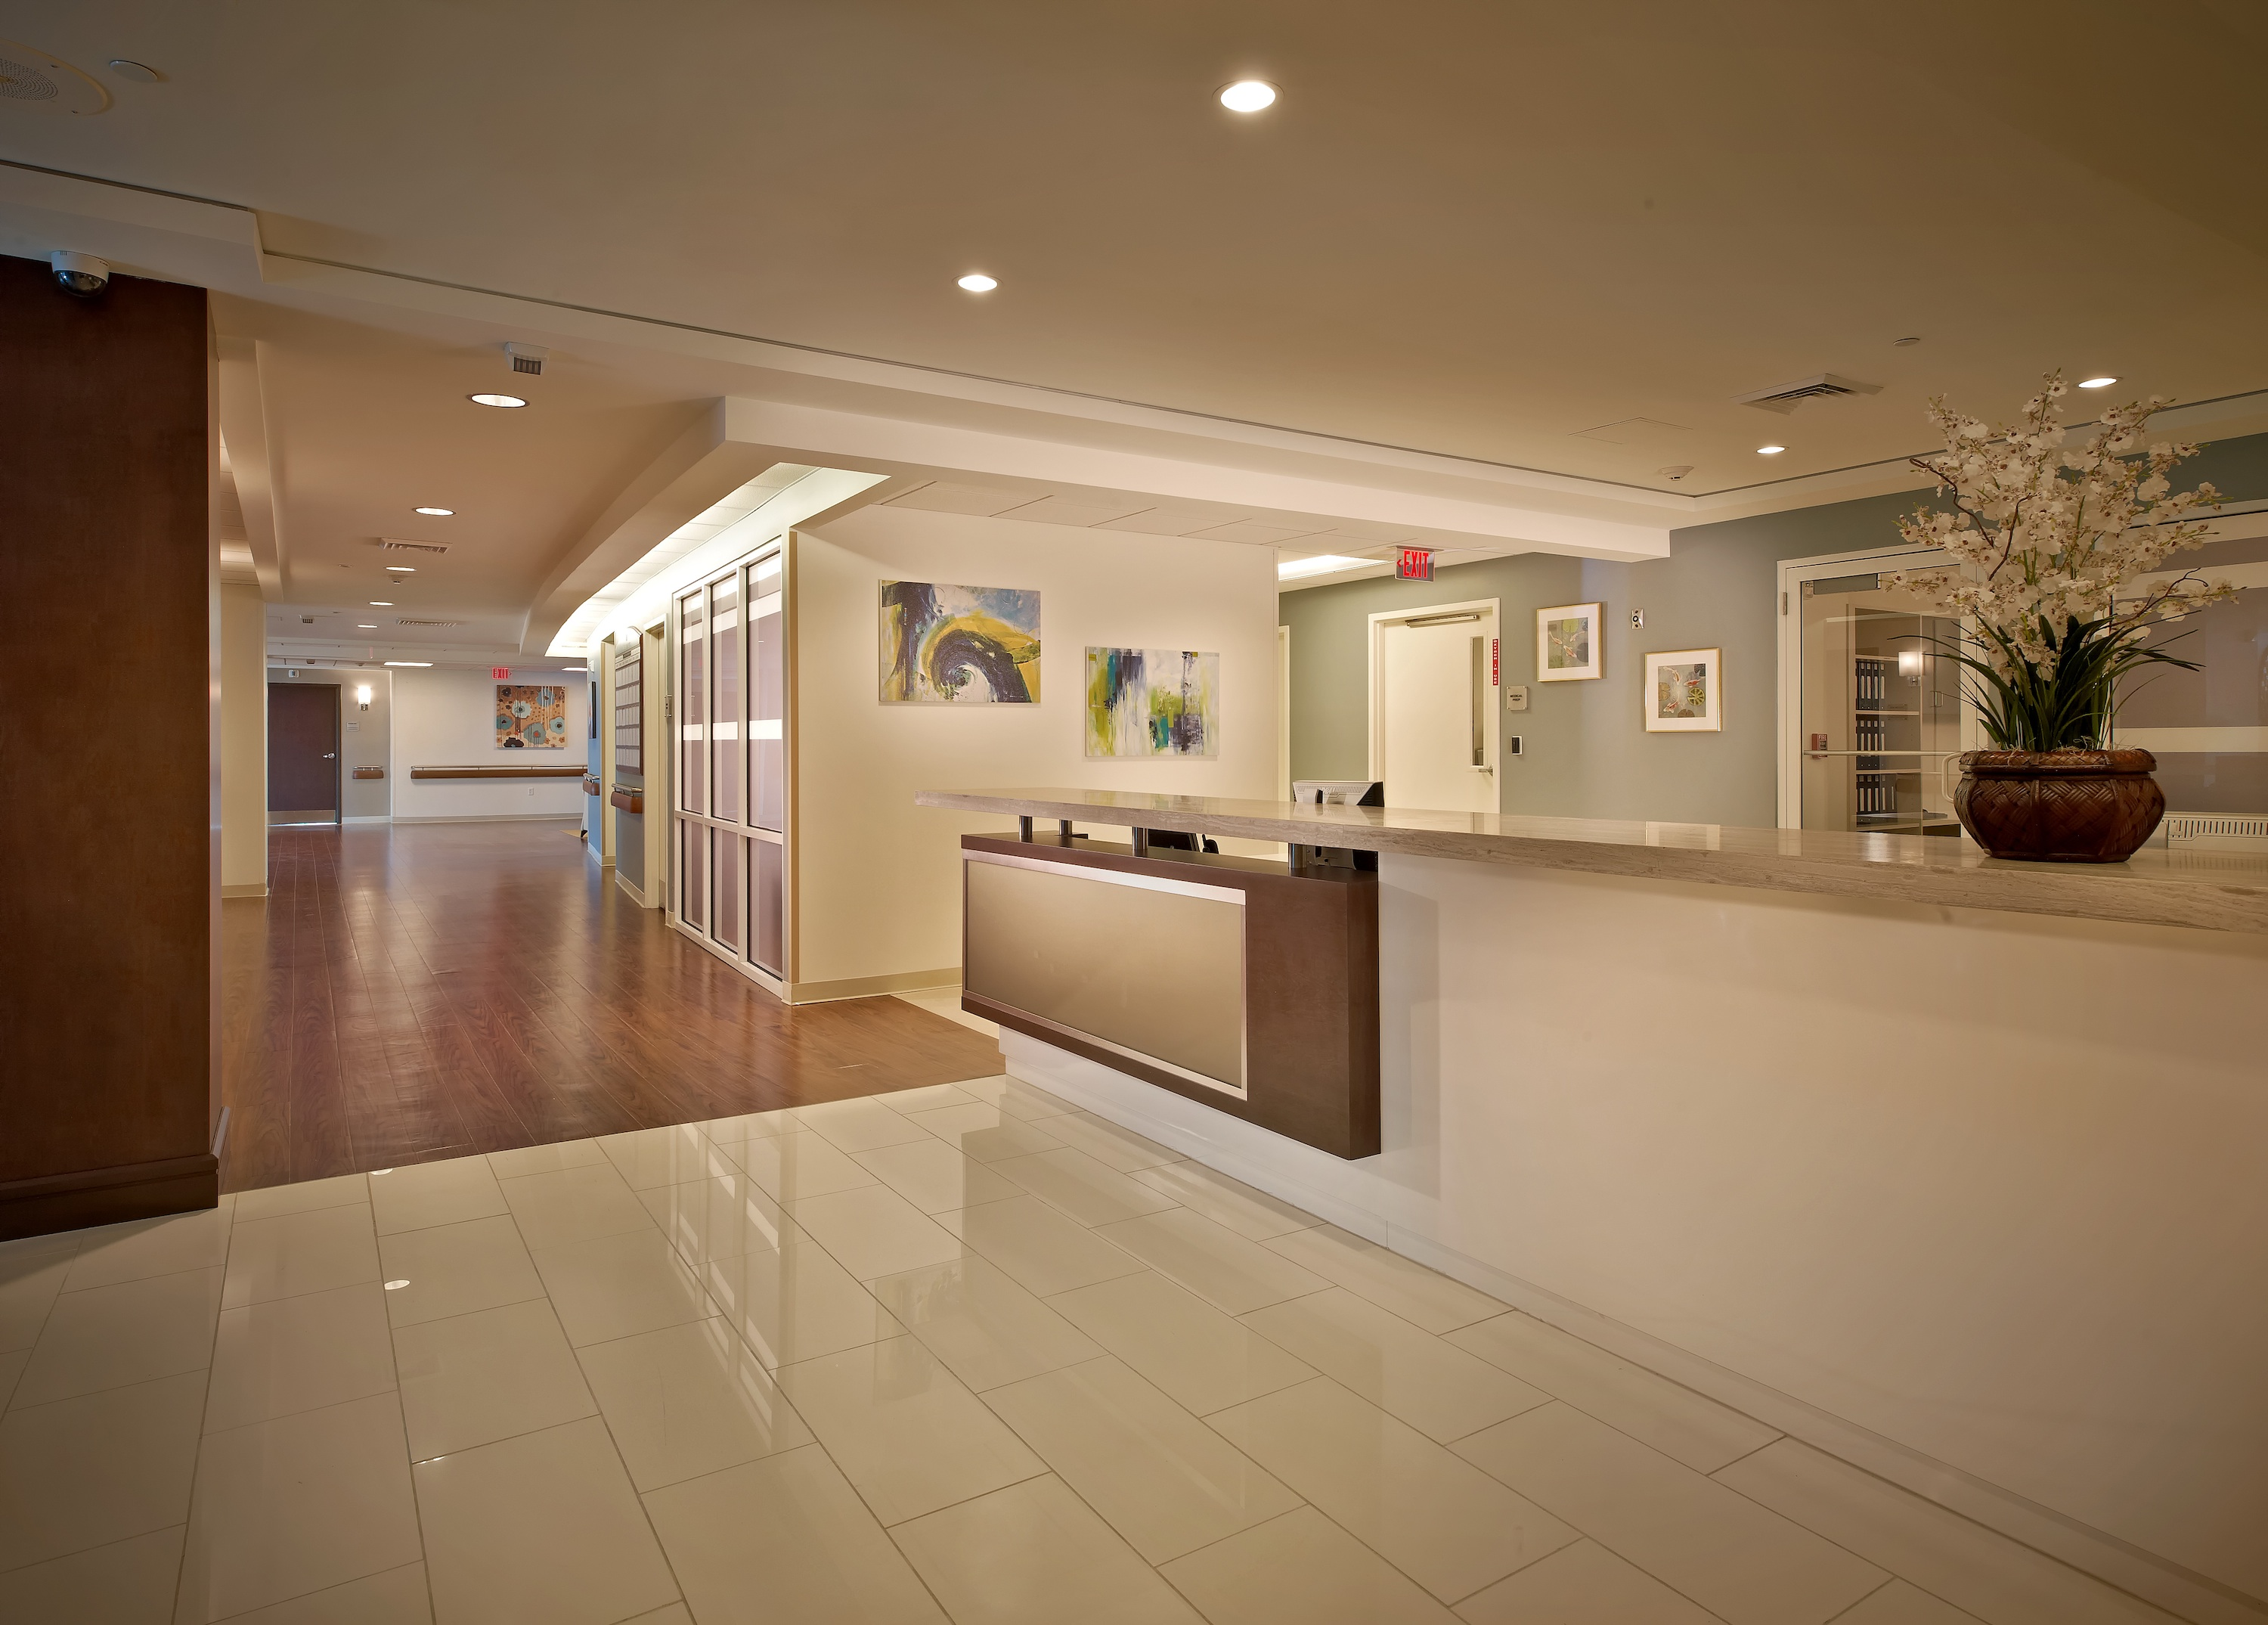 Add inc brings modern design and amenities to new Nursing home architecture